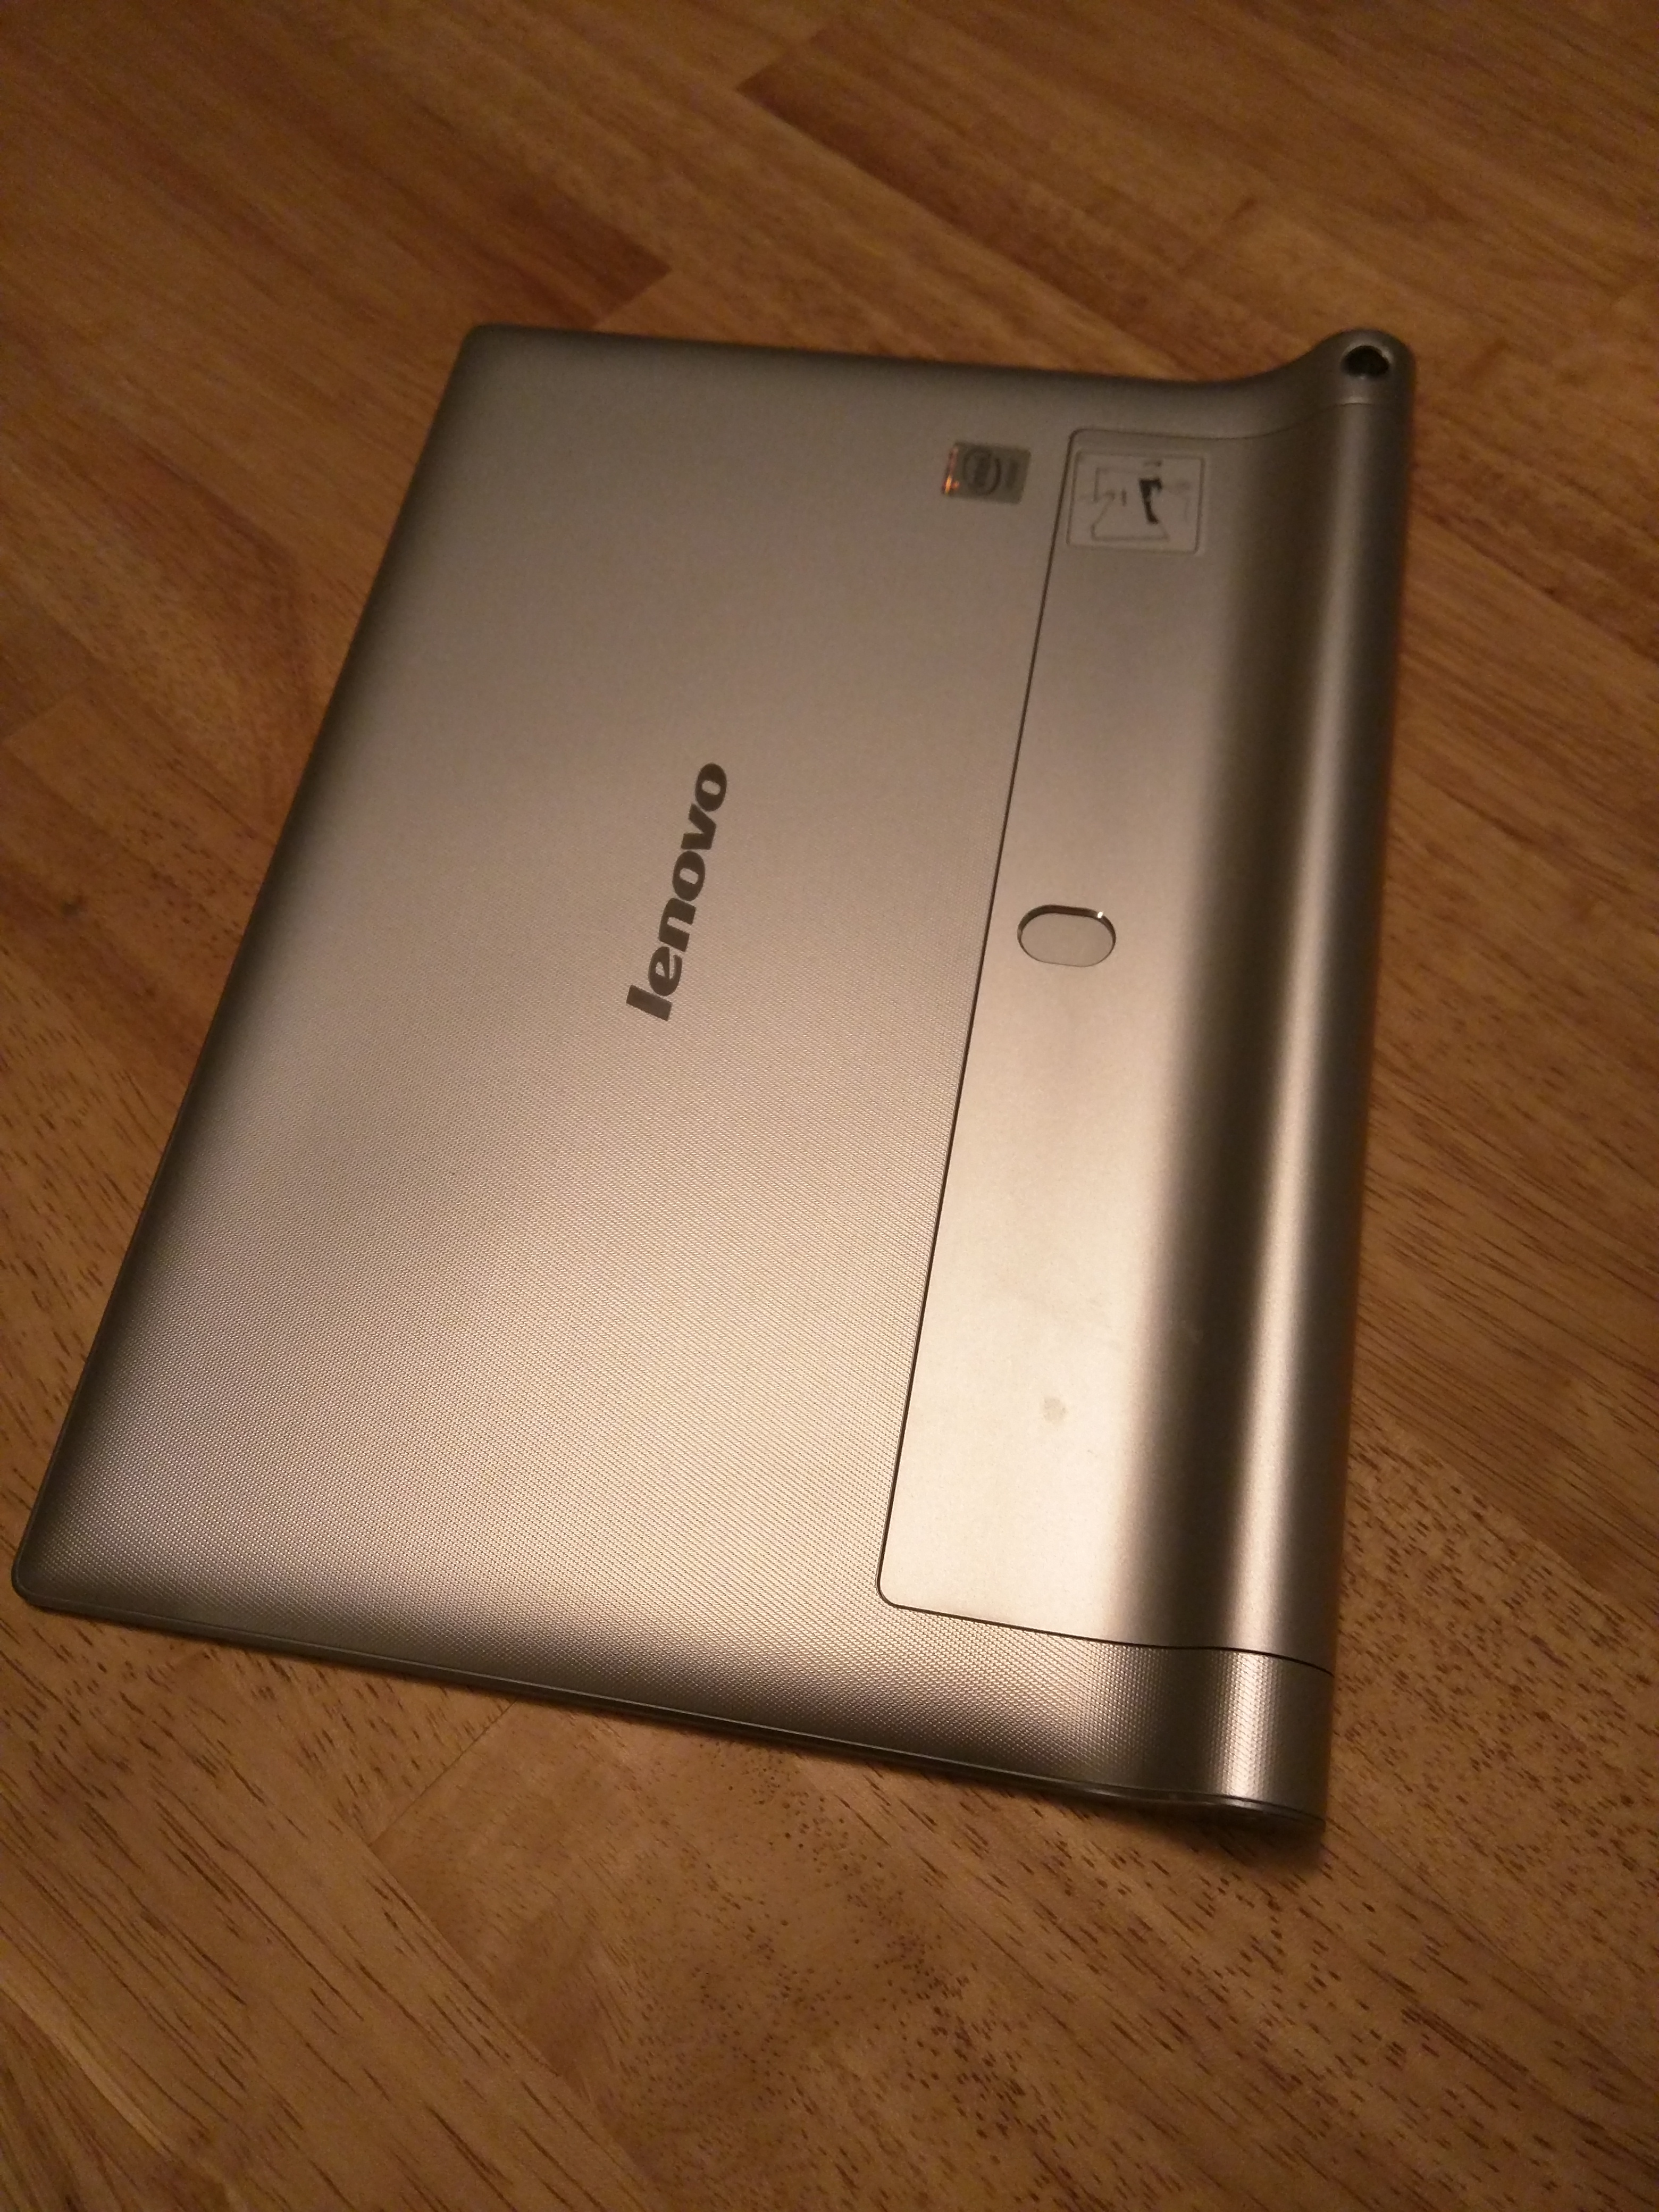 Lenovo Yoga Tablet 2 10-inch review